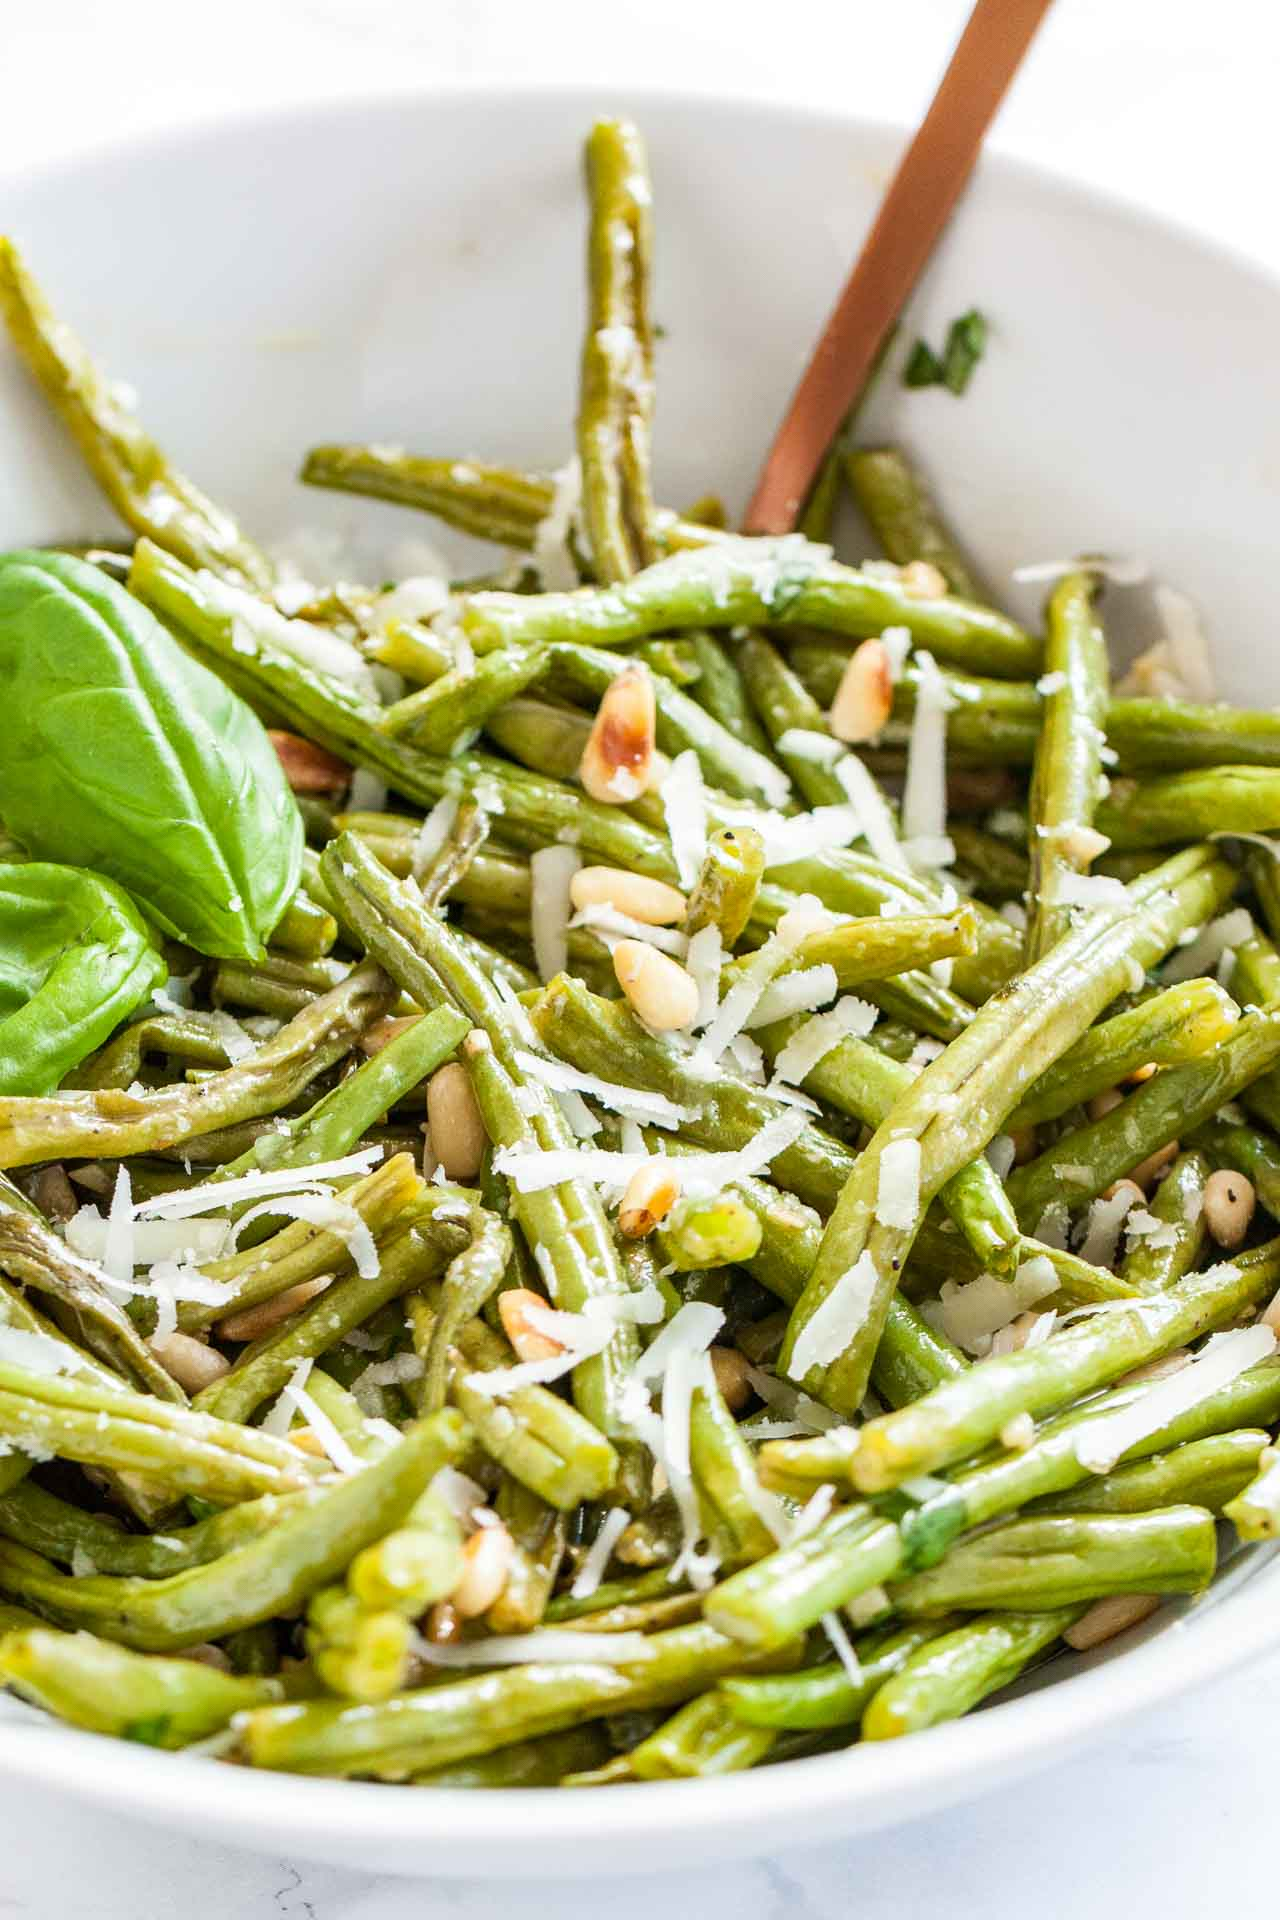 Parmesan Oven Roasted Green Beans are the perfect side dish for holidays or family dinners! Roasted in the oven to perfection, tossed with a flavorful lemon vinaigrette and sprinkled with parmesan and pine nuts, this easy dish is the most delicious way to enjoy fresh green beans.